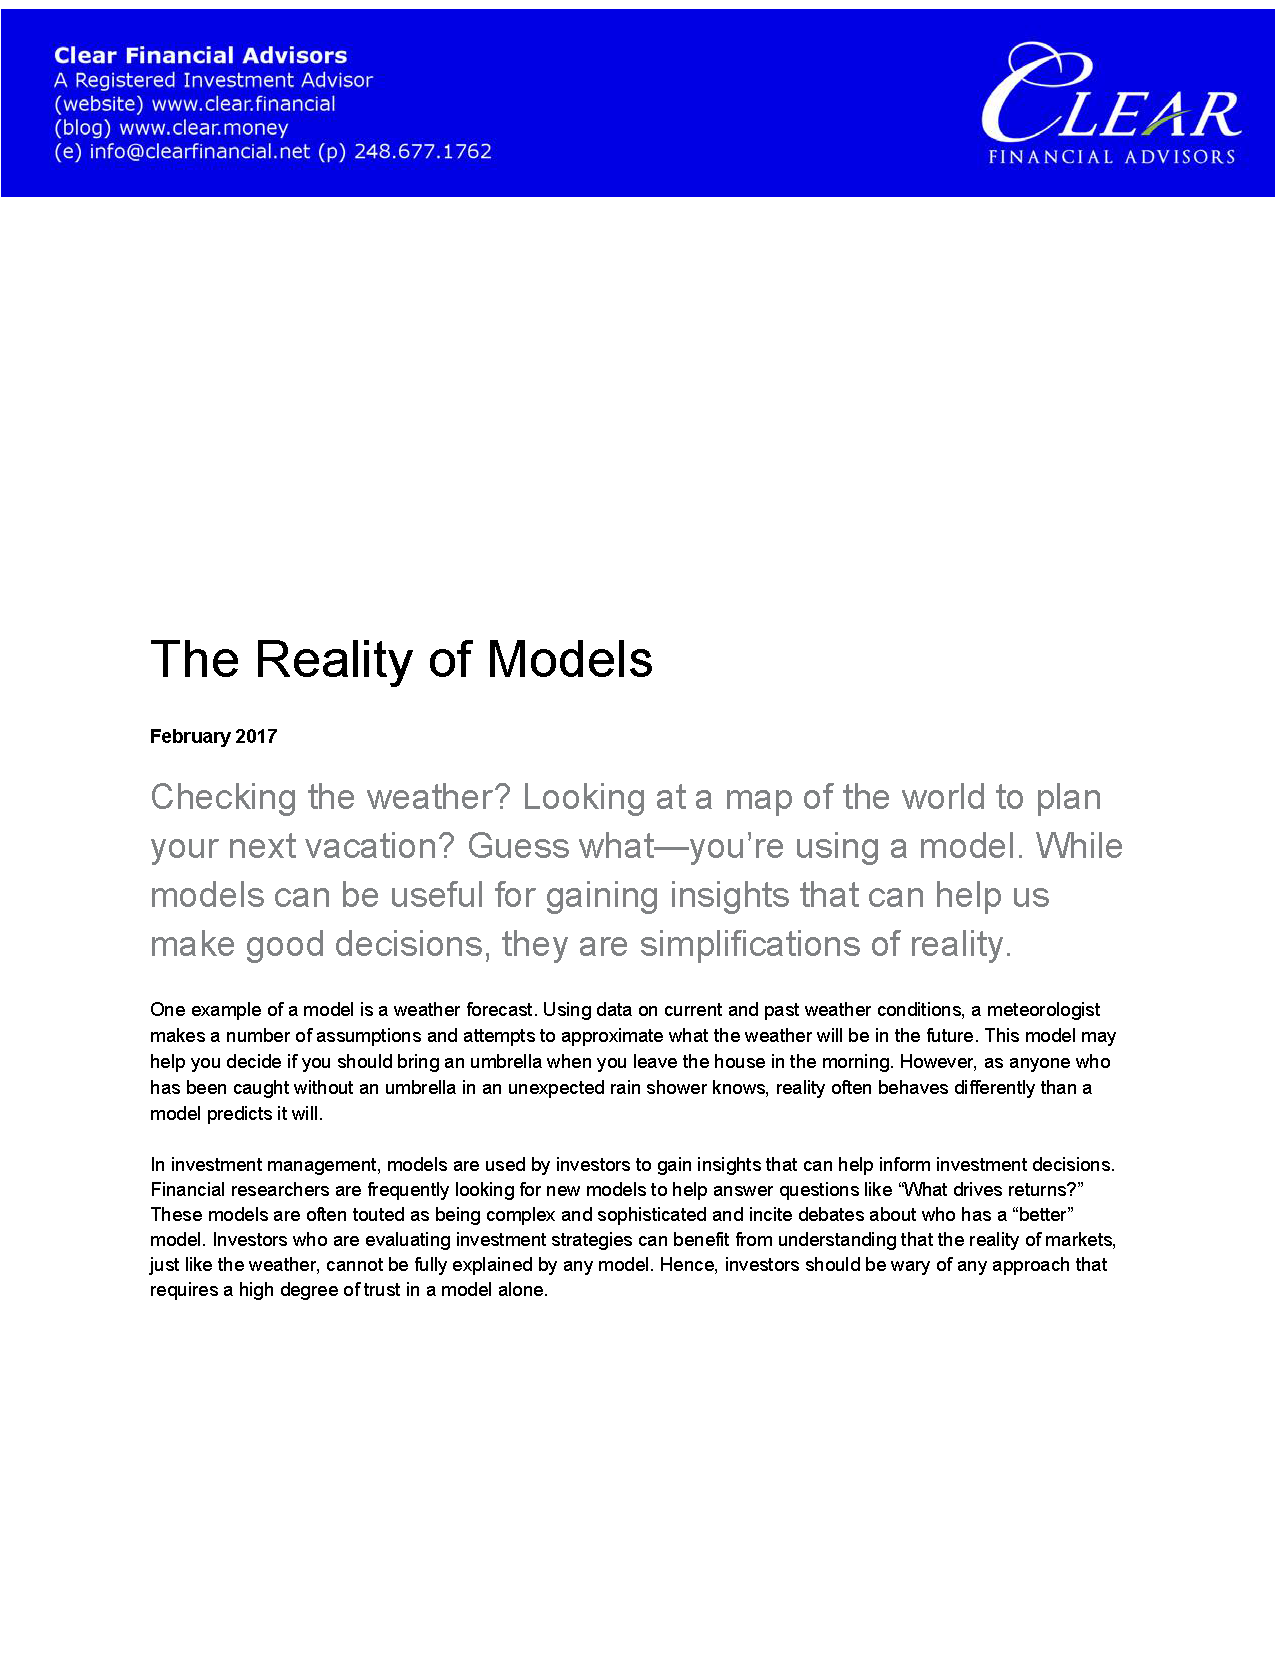 The Reality of Models_Page_1